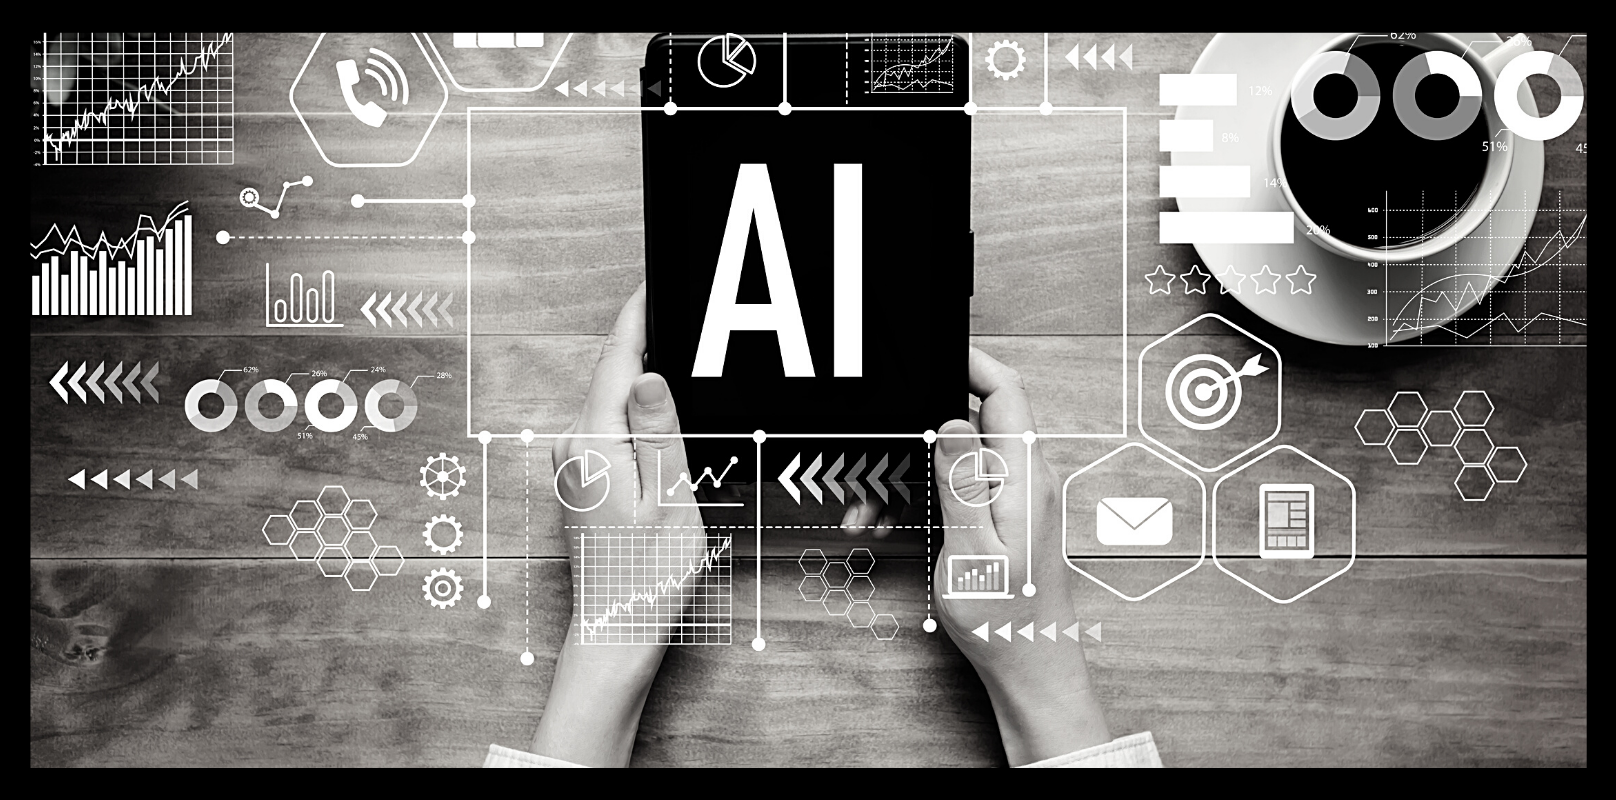 ai-and-ml-emerging-technology